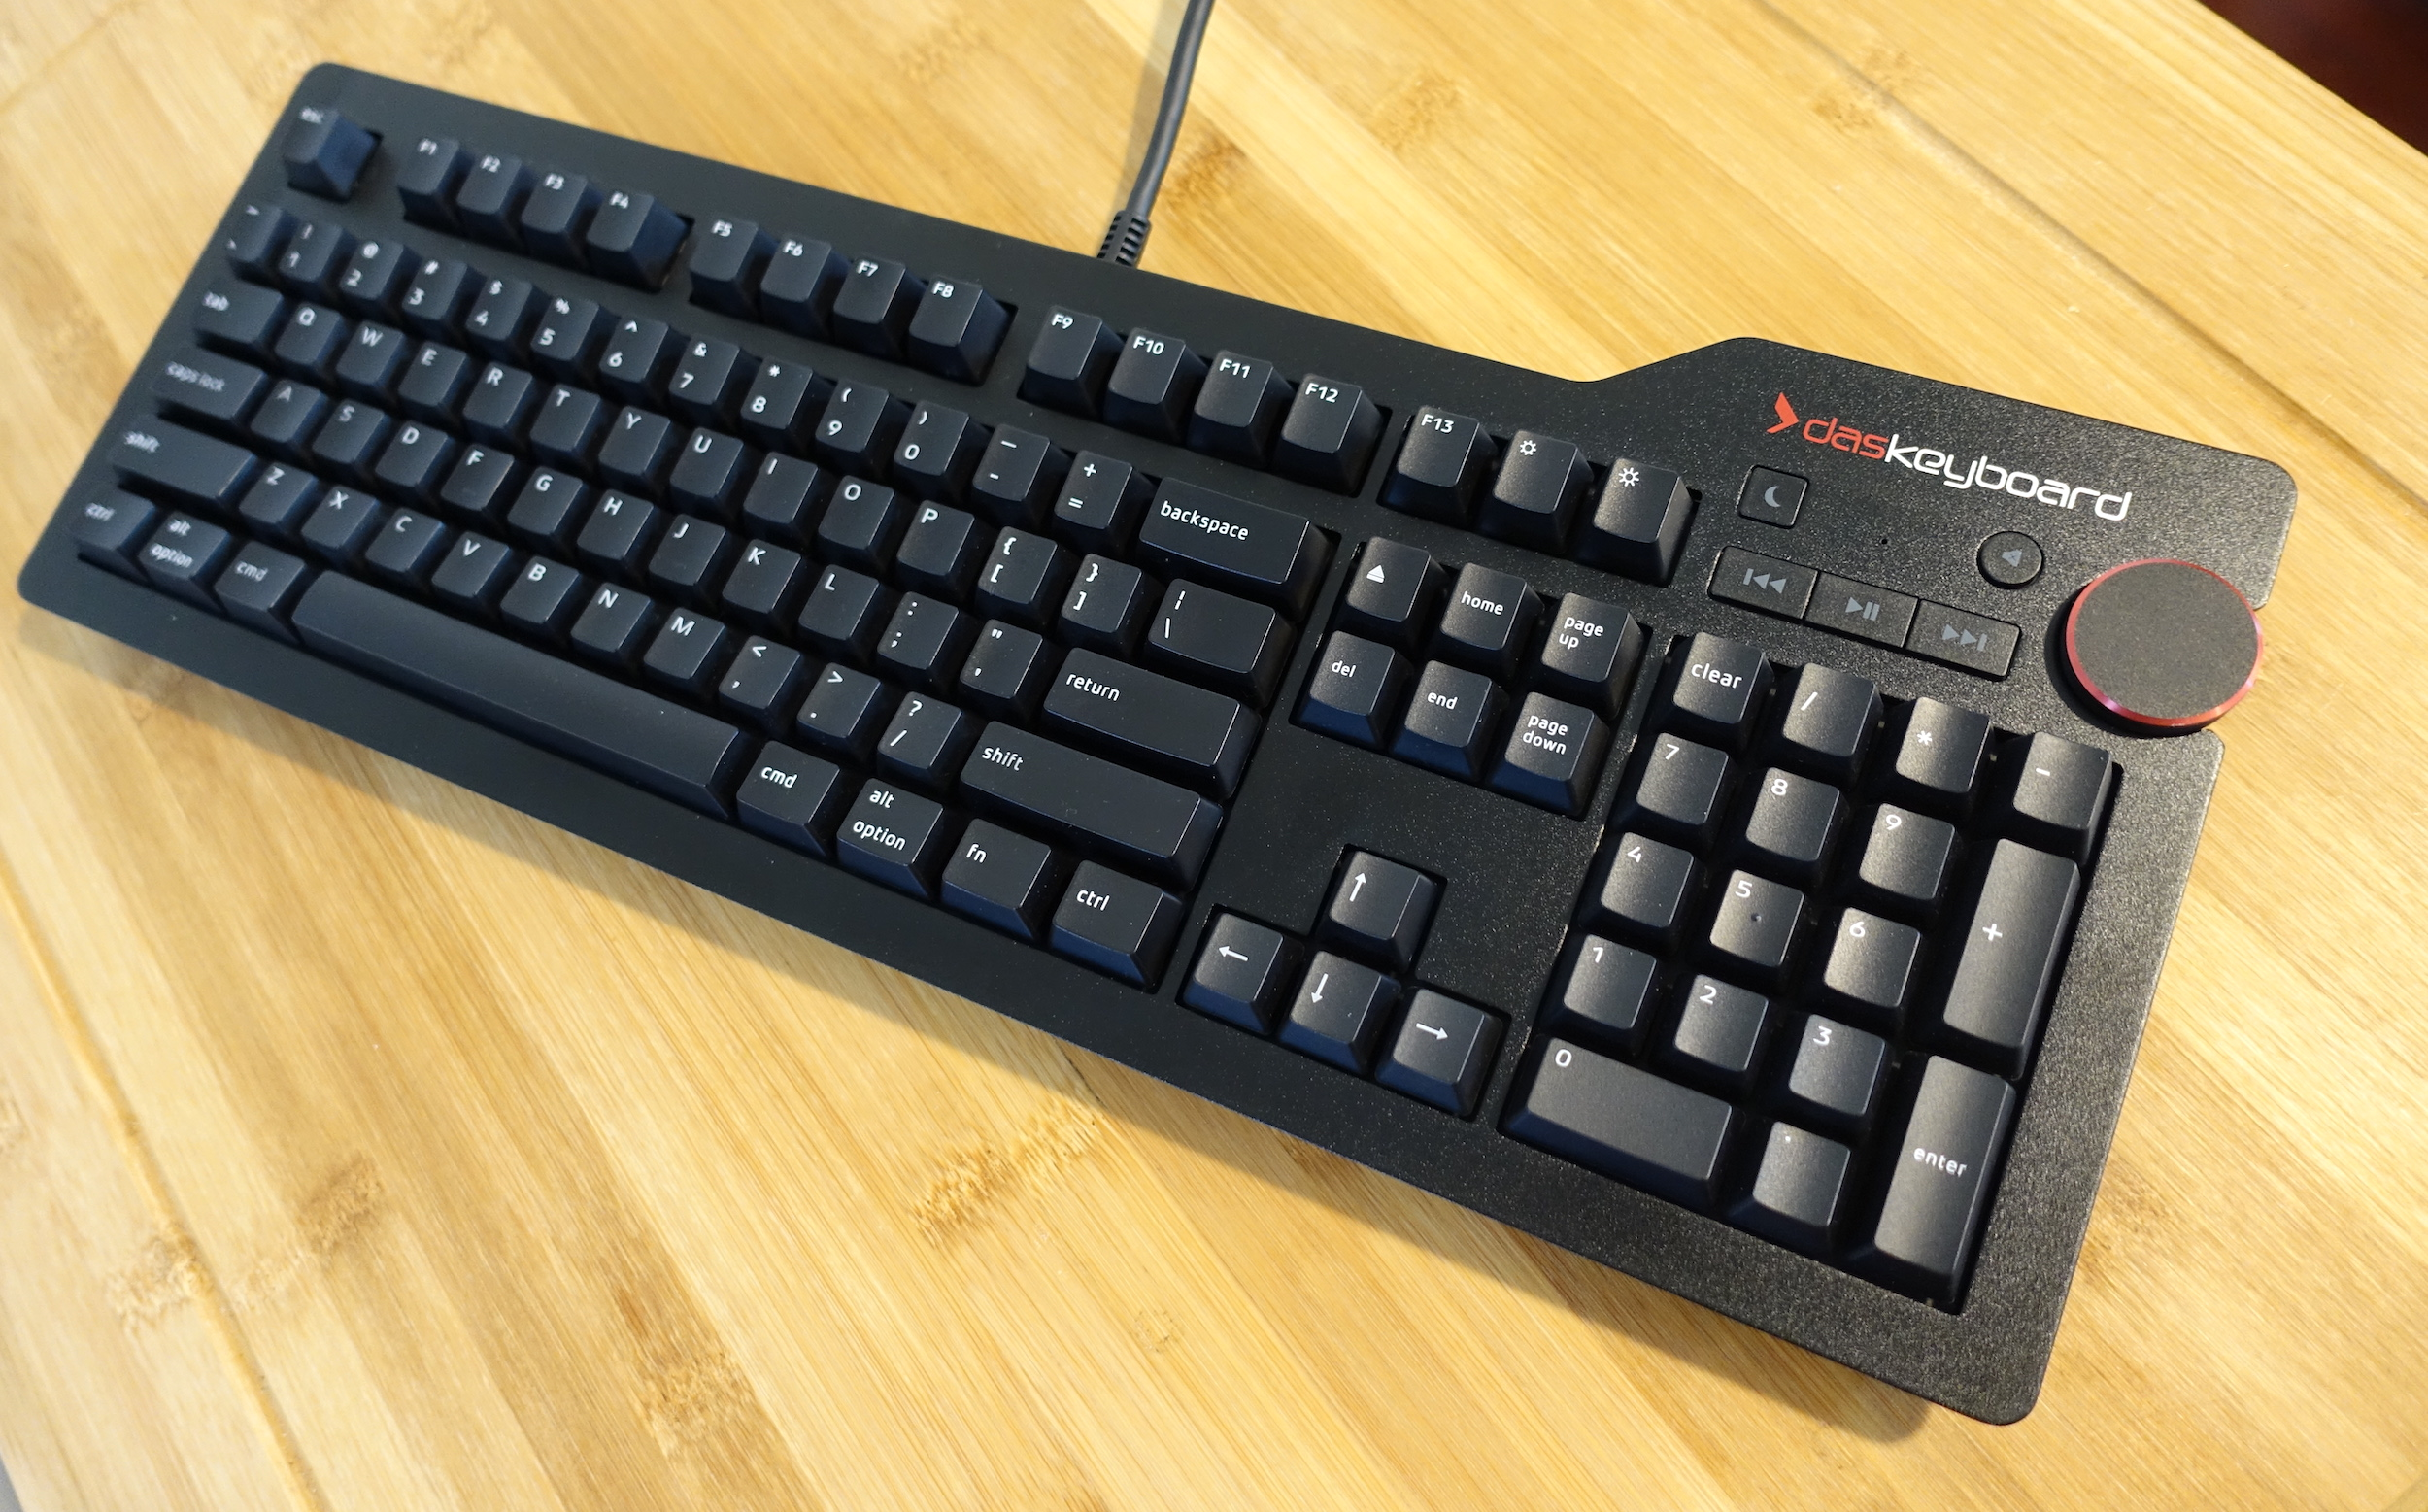 The Das Keyboard 4 Professional has been around for a few years now but is still a good buy among full-size mechanical keyboards.